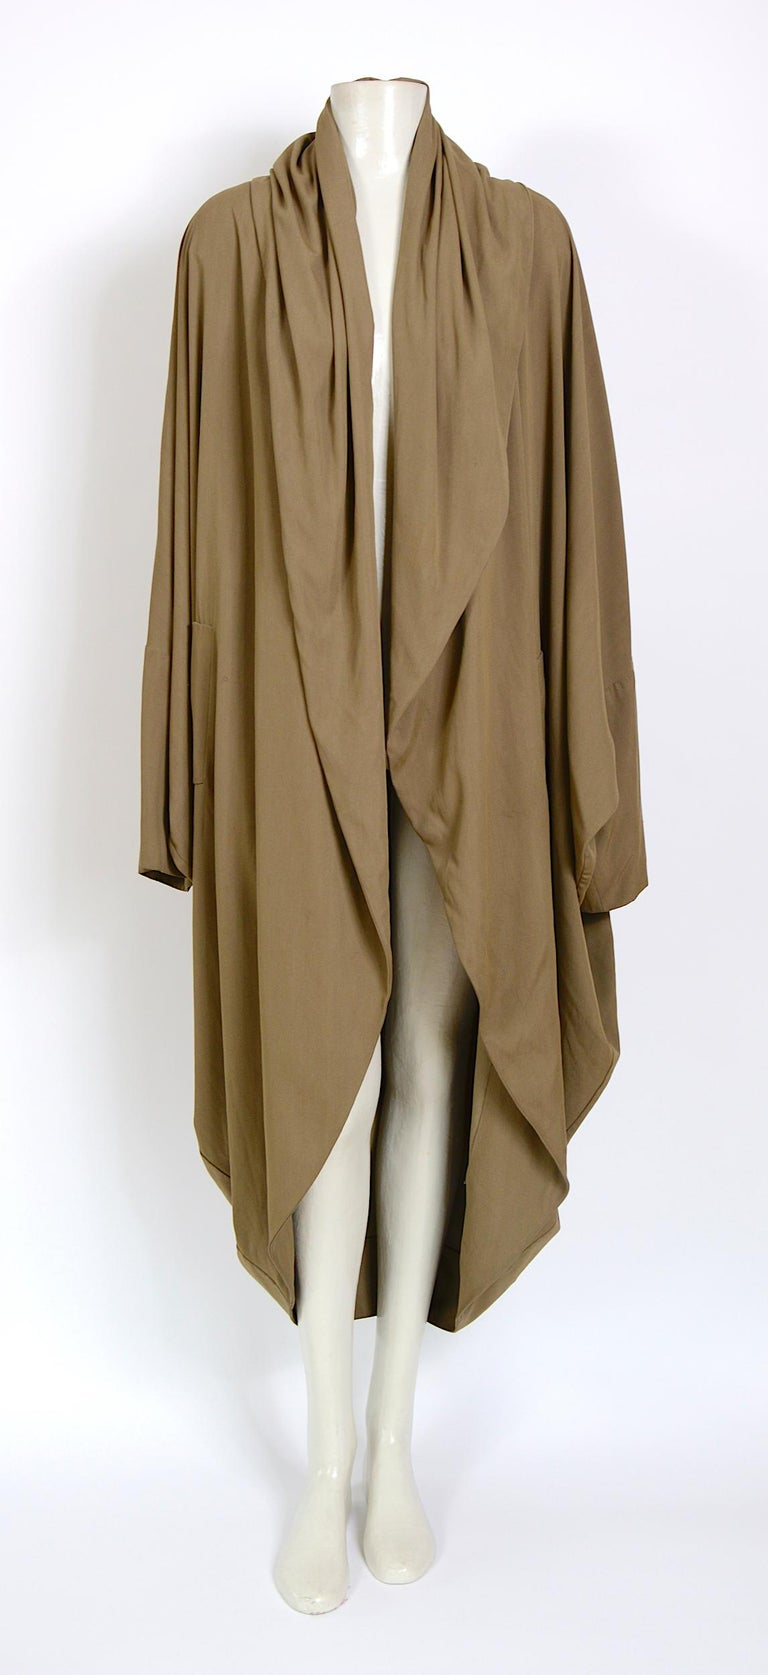 Romeo Gigli collectors cocoon coat Purchase over more than 30 years ago at the